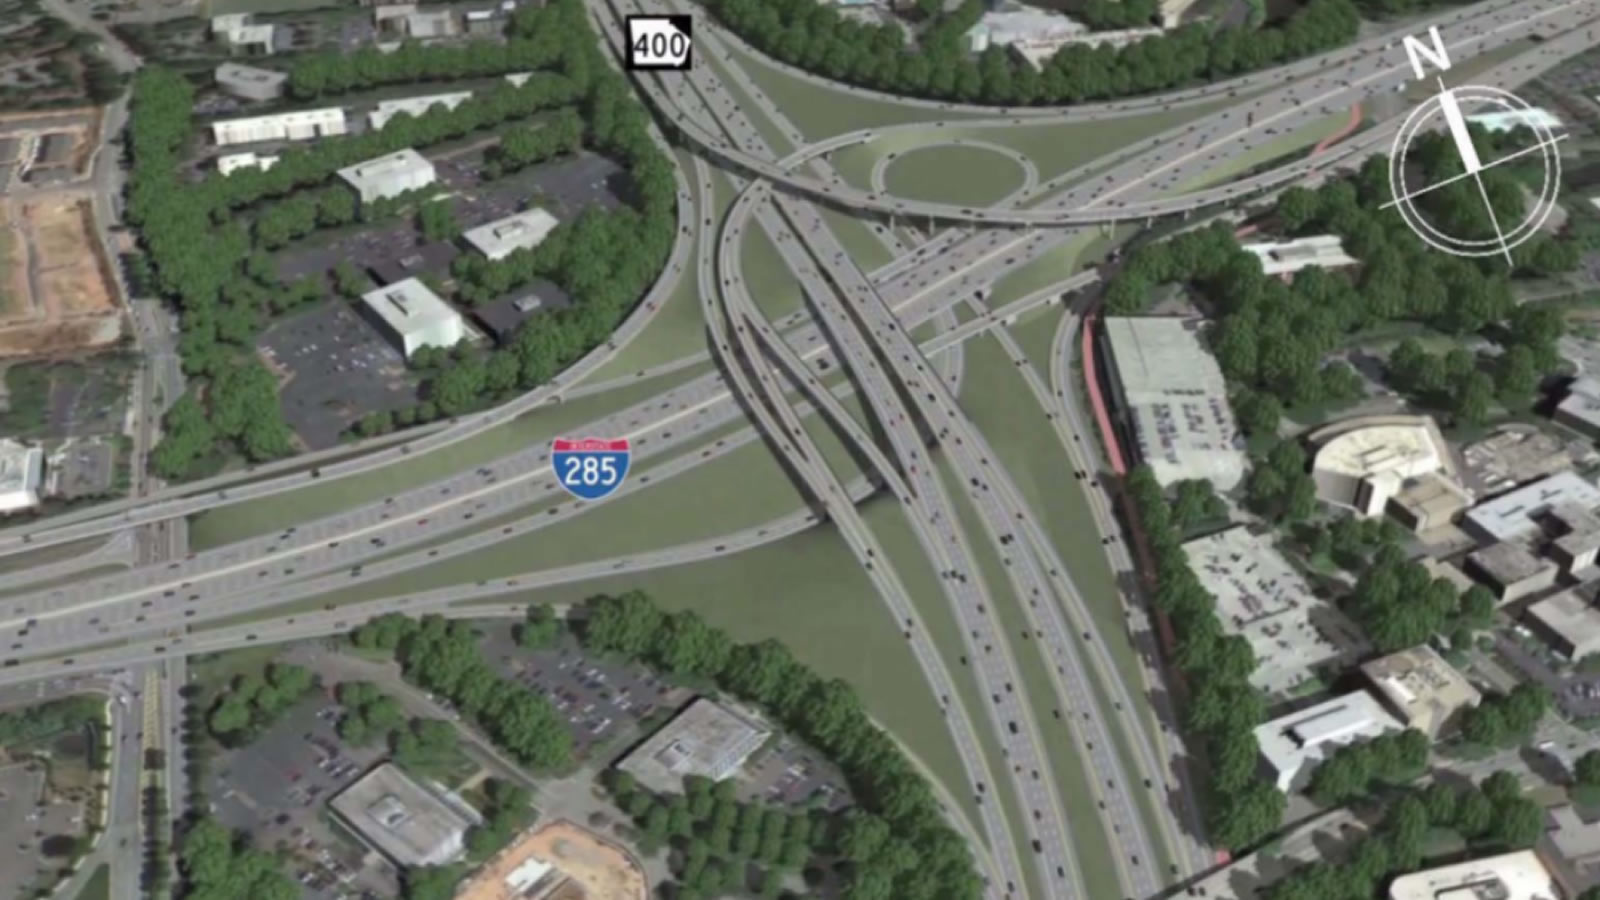 <h3>285 & SR 400 Interchange Rebuilding, Georgia</h3><h4>Cost: $596 million</h4><p>It's a boondoggle because: After morphing far beyond its original scope into one of the most expensive road projects in Georgia history, an $800 million interchange expansion is moving forward – even as Atlanta residents clamor for more and better transit.</p><em>Georgia Department of Transportation</em>